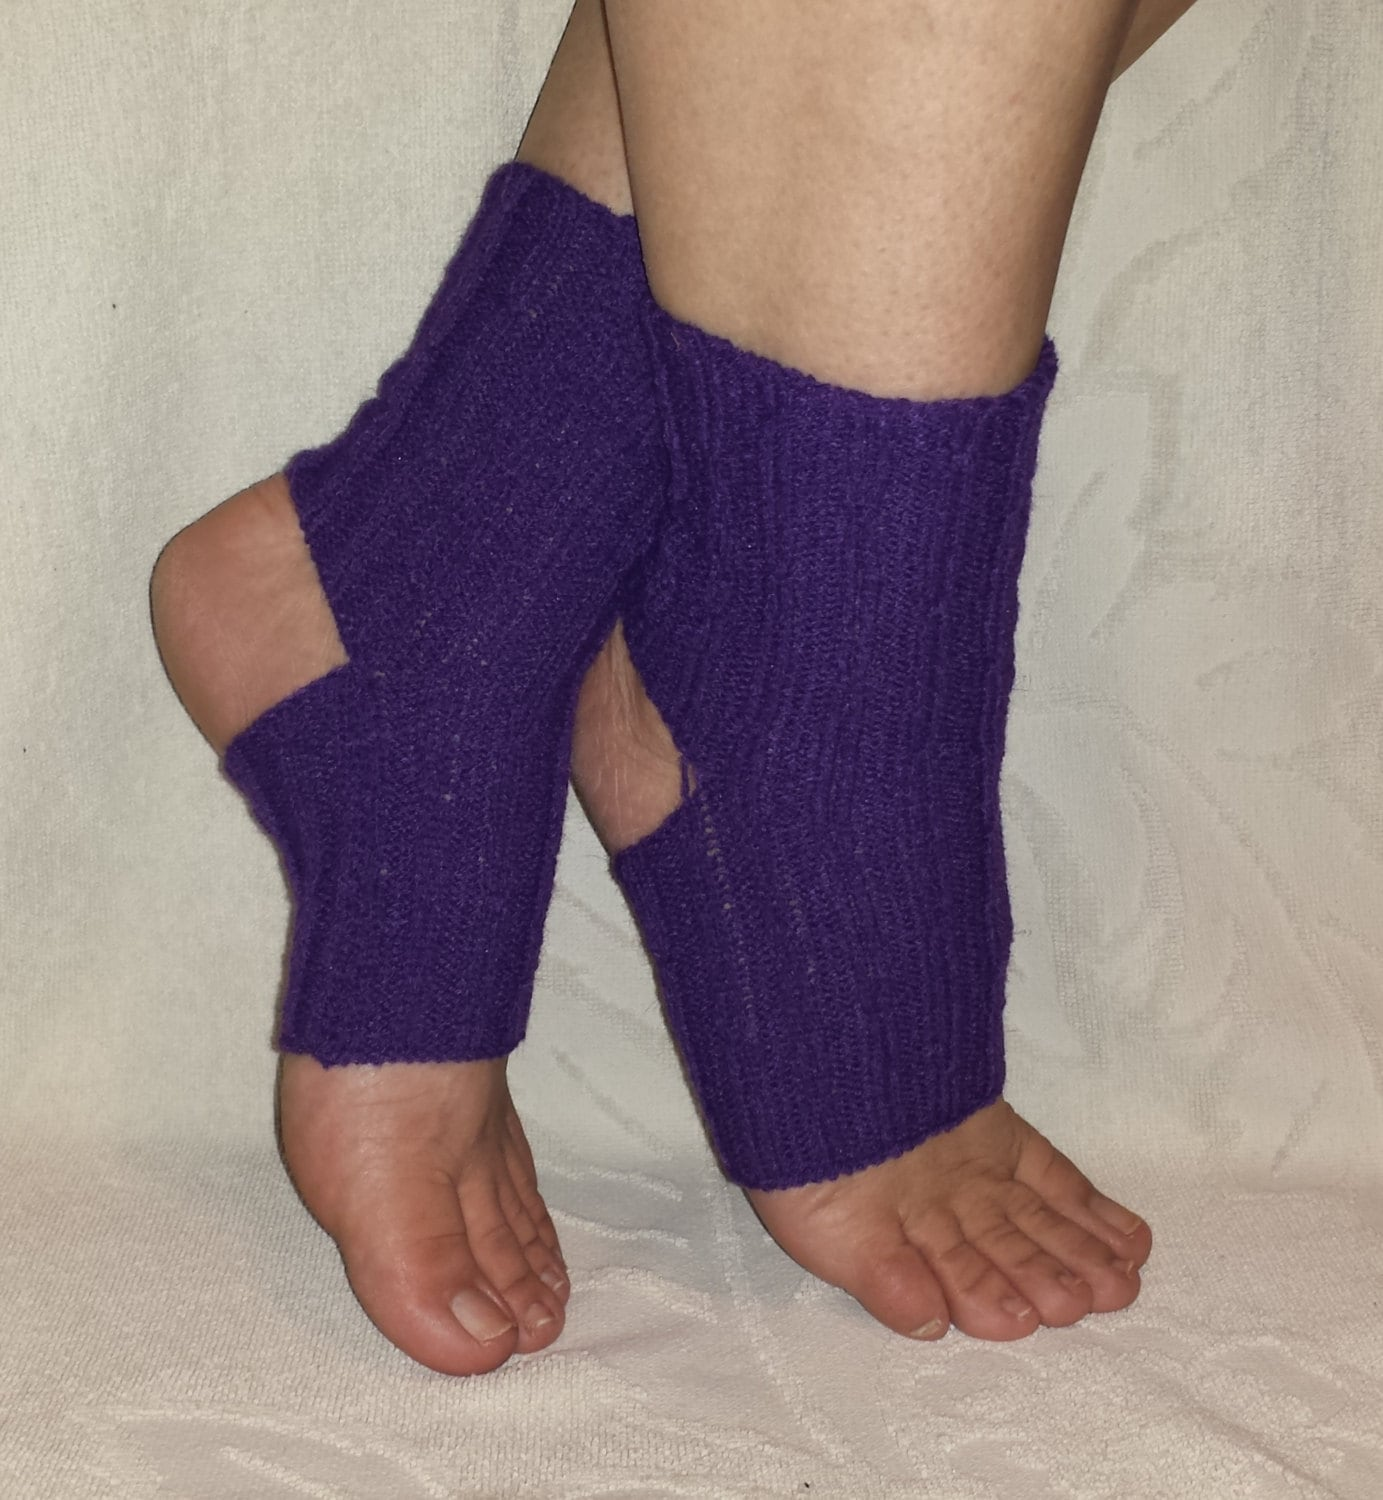 MACHINE KNIT PATTERN, Yoga Socks Pattern, Feet Savers Pattern, How ...